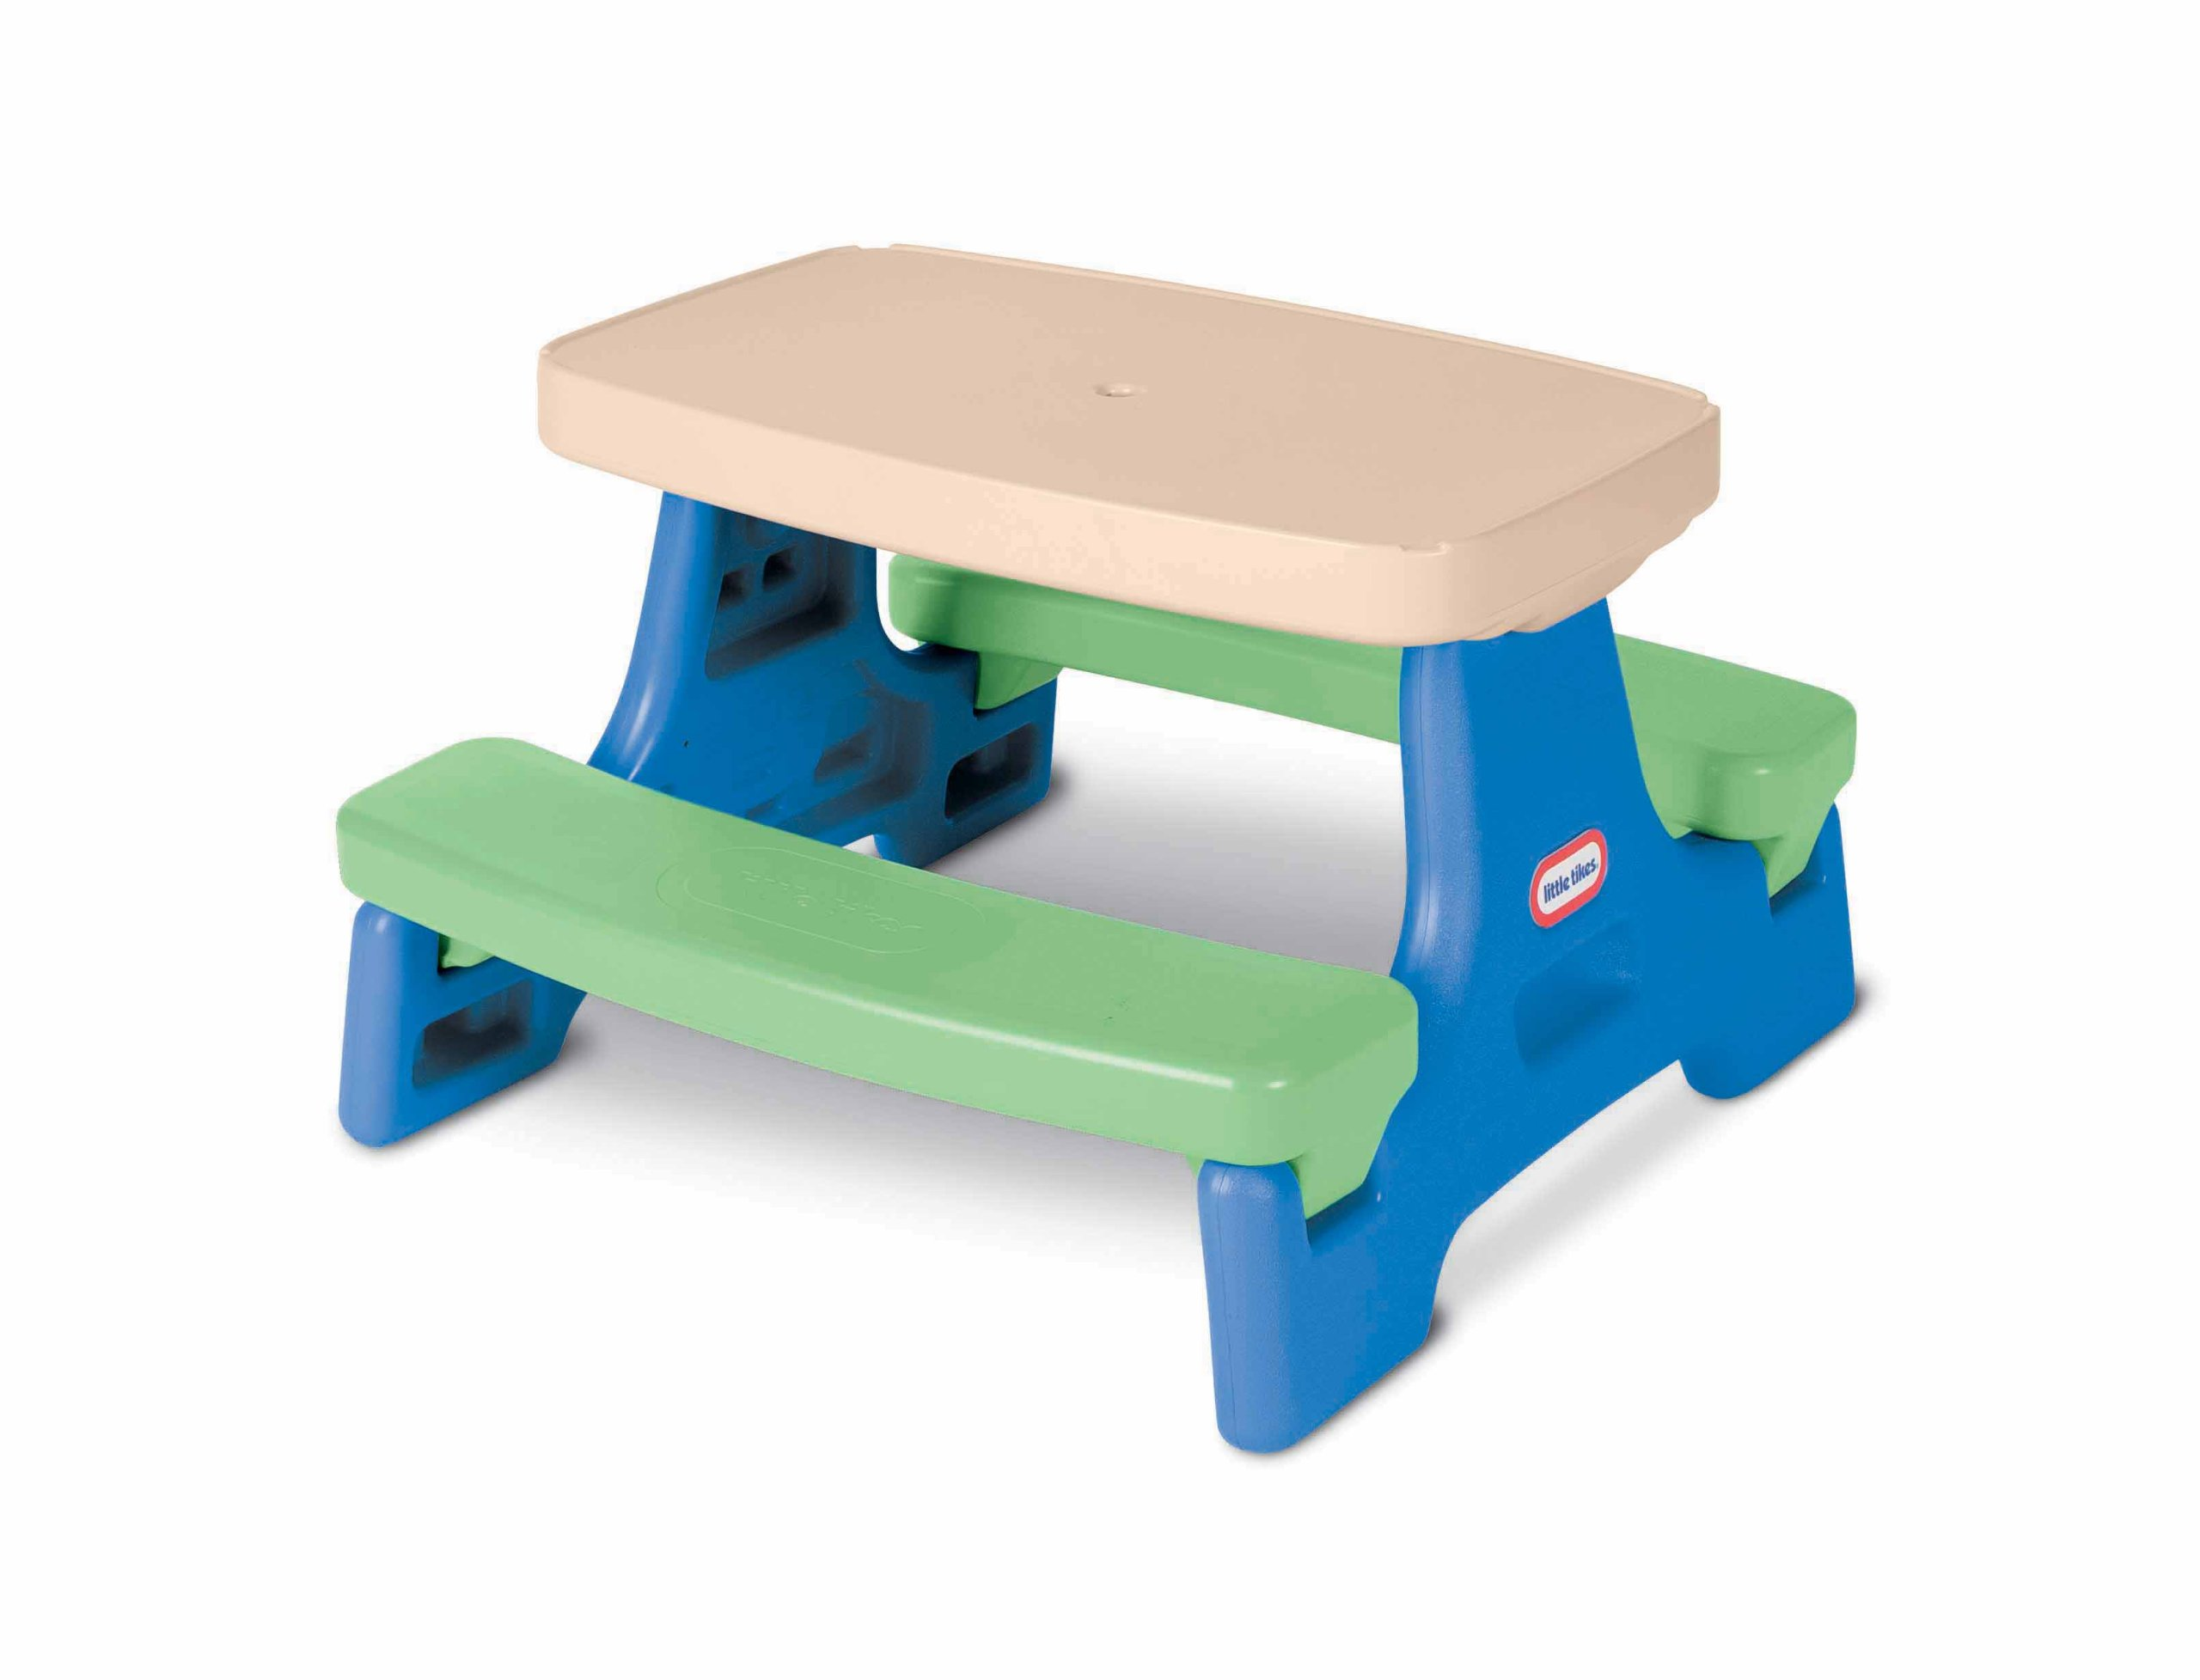 Little Tikes Easy Store Jr. Play Table [Amazon Exclusive] by Little Tikes